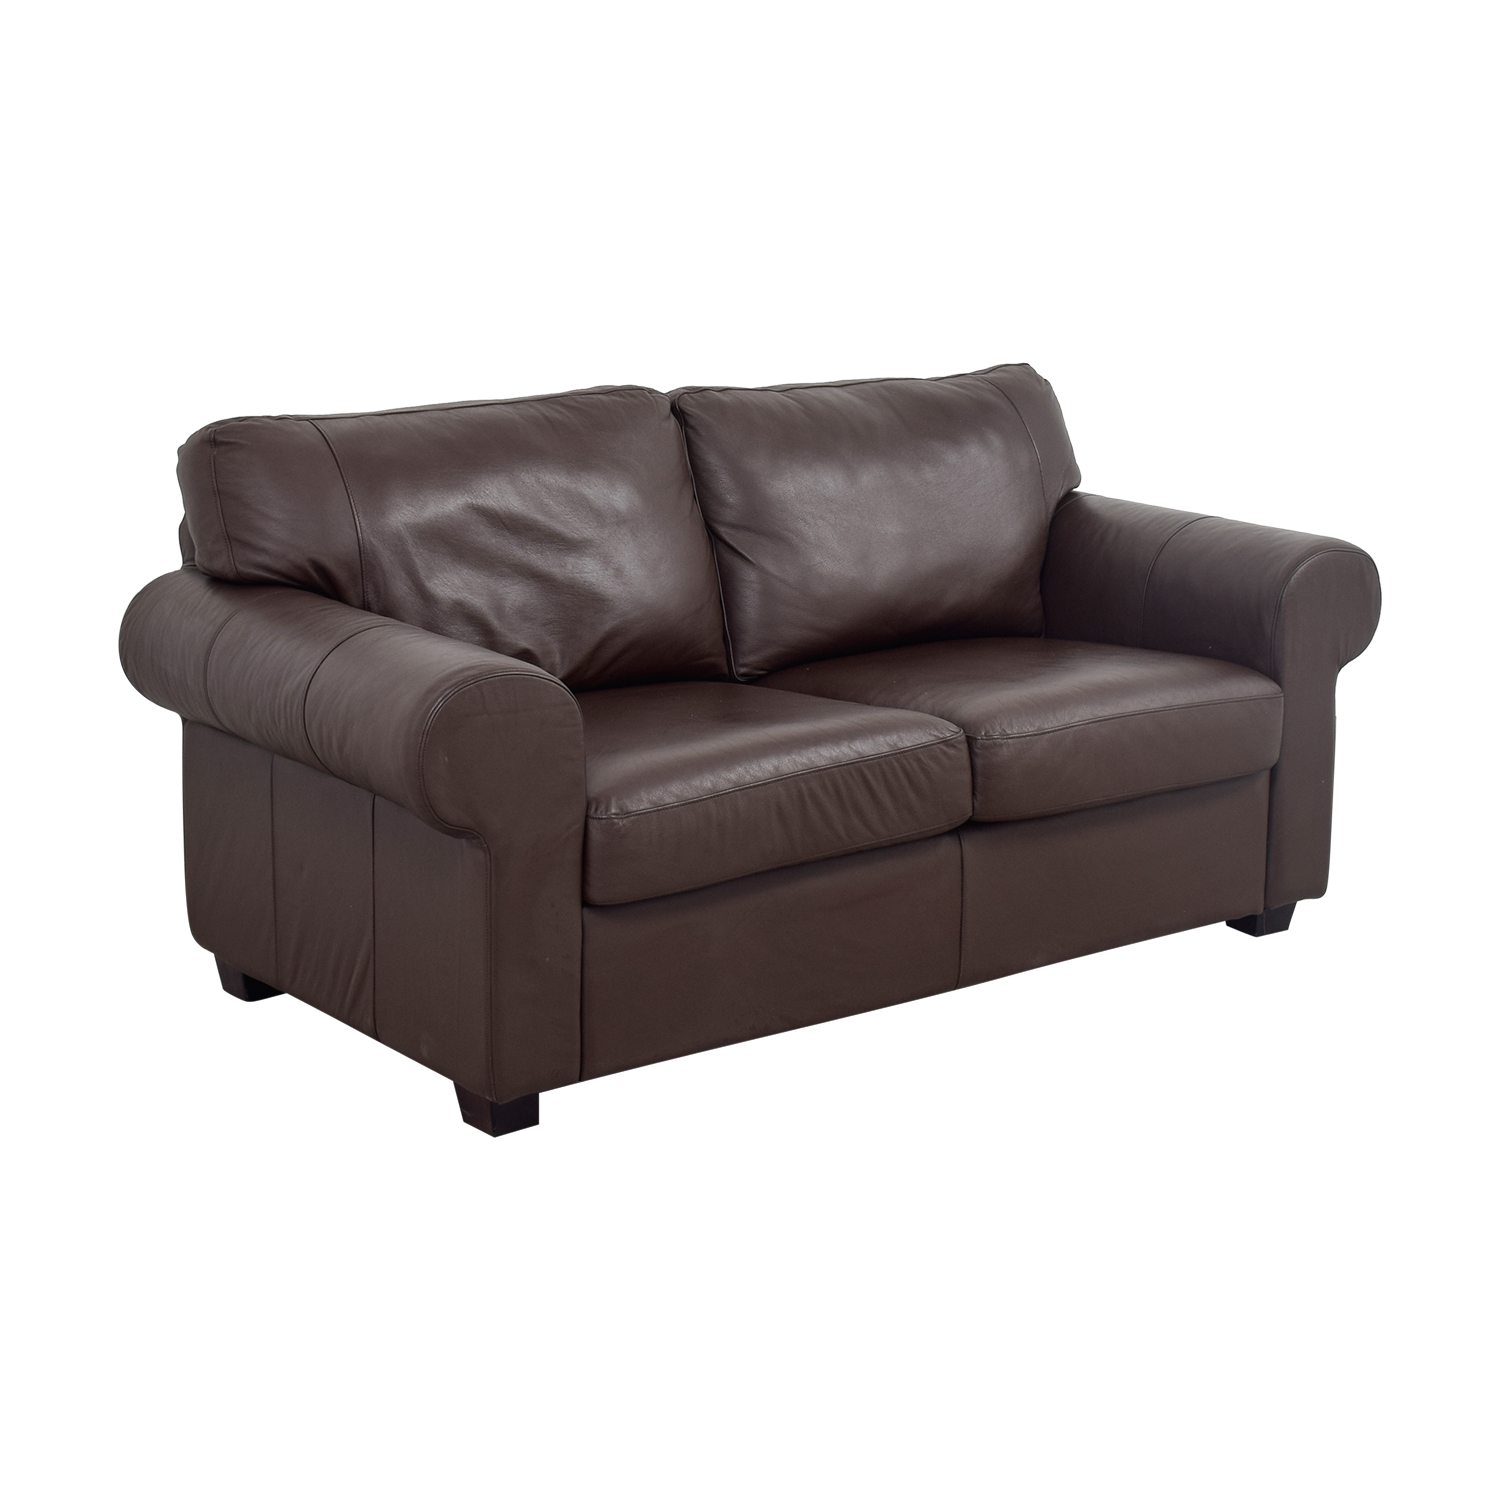 Brown Leather Curved Arm Loveseat nj